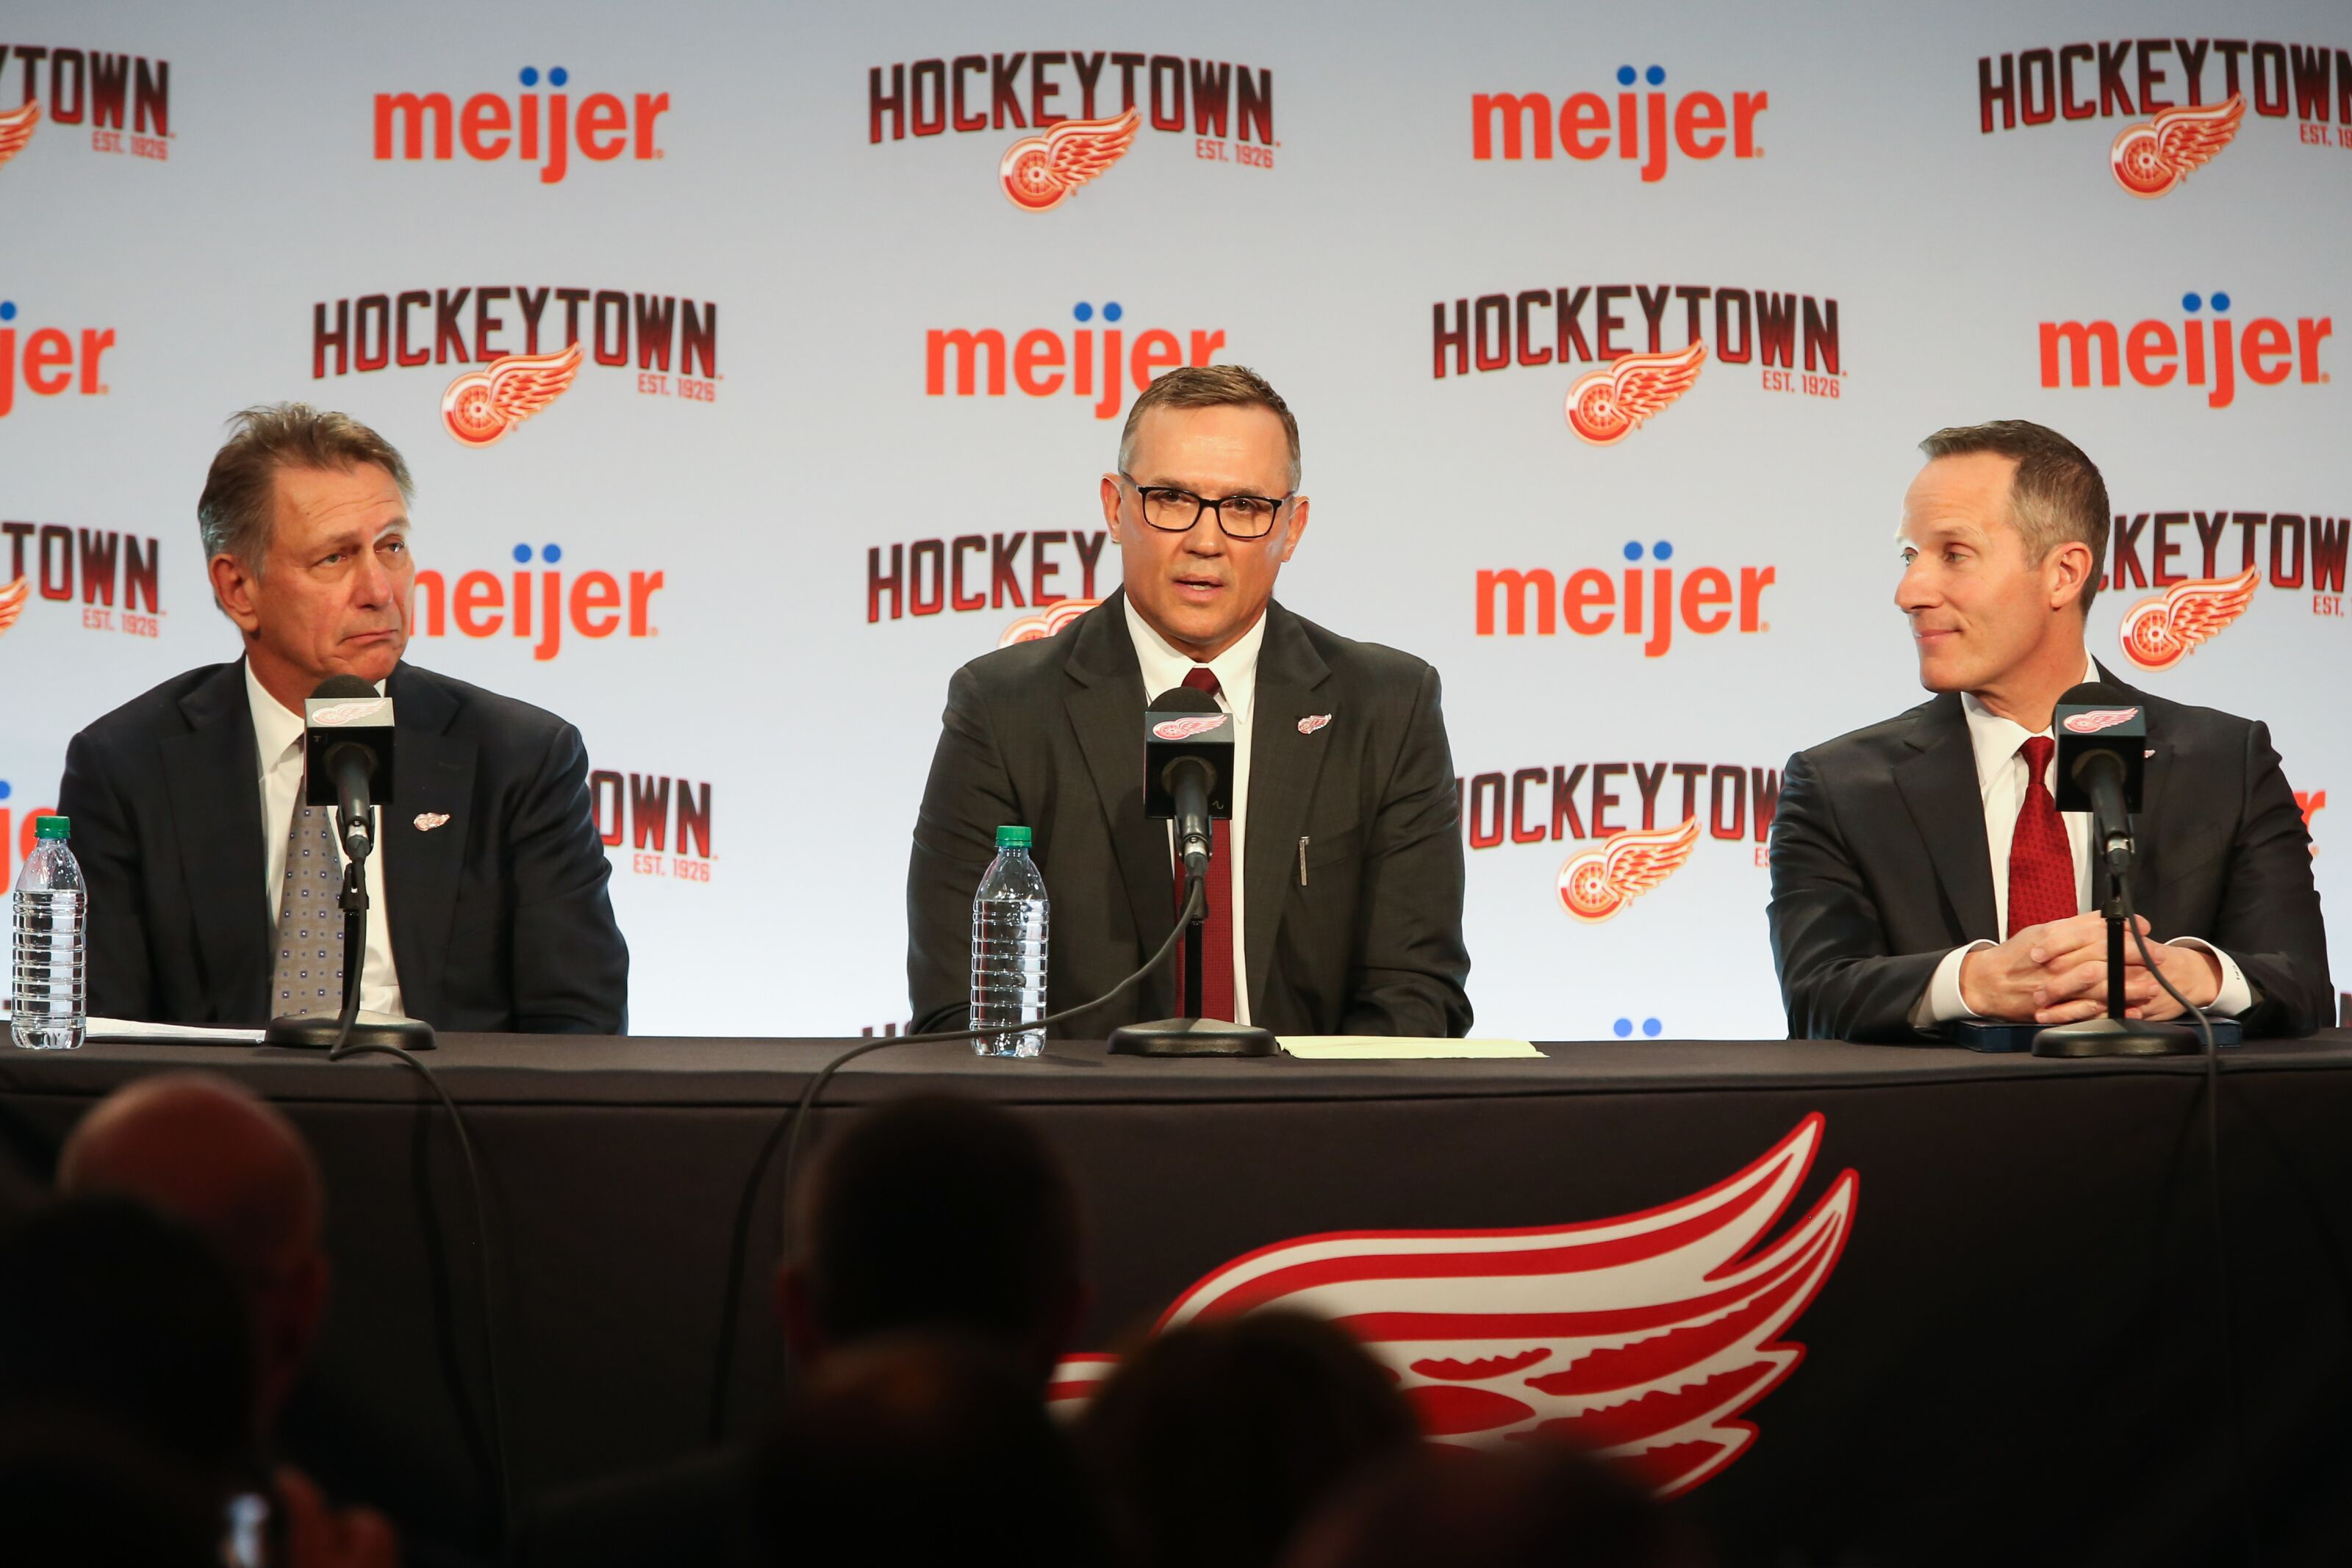 Detroit Red Wings Legend Returns; We welcome home Steve Yzerman